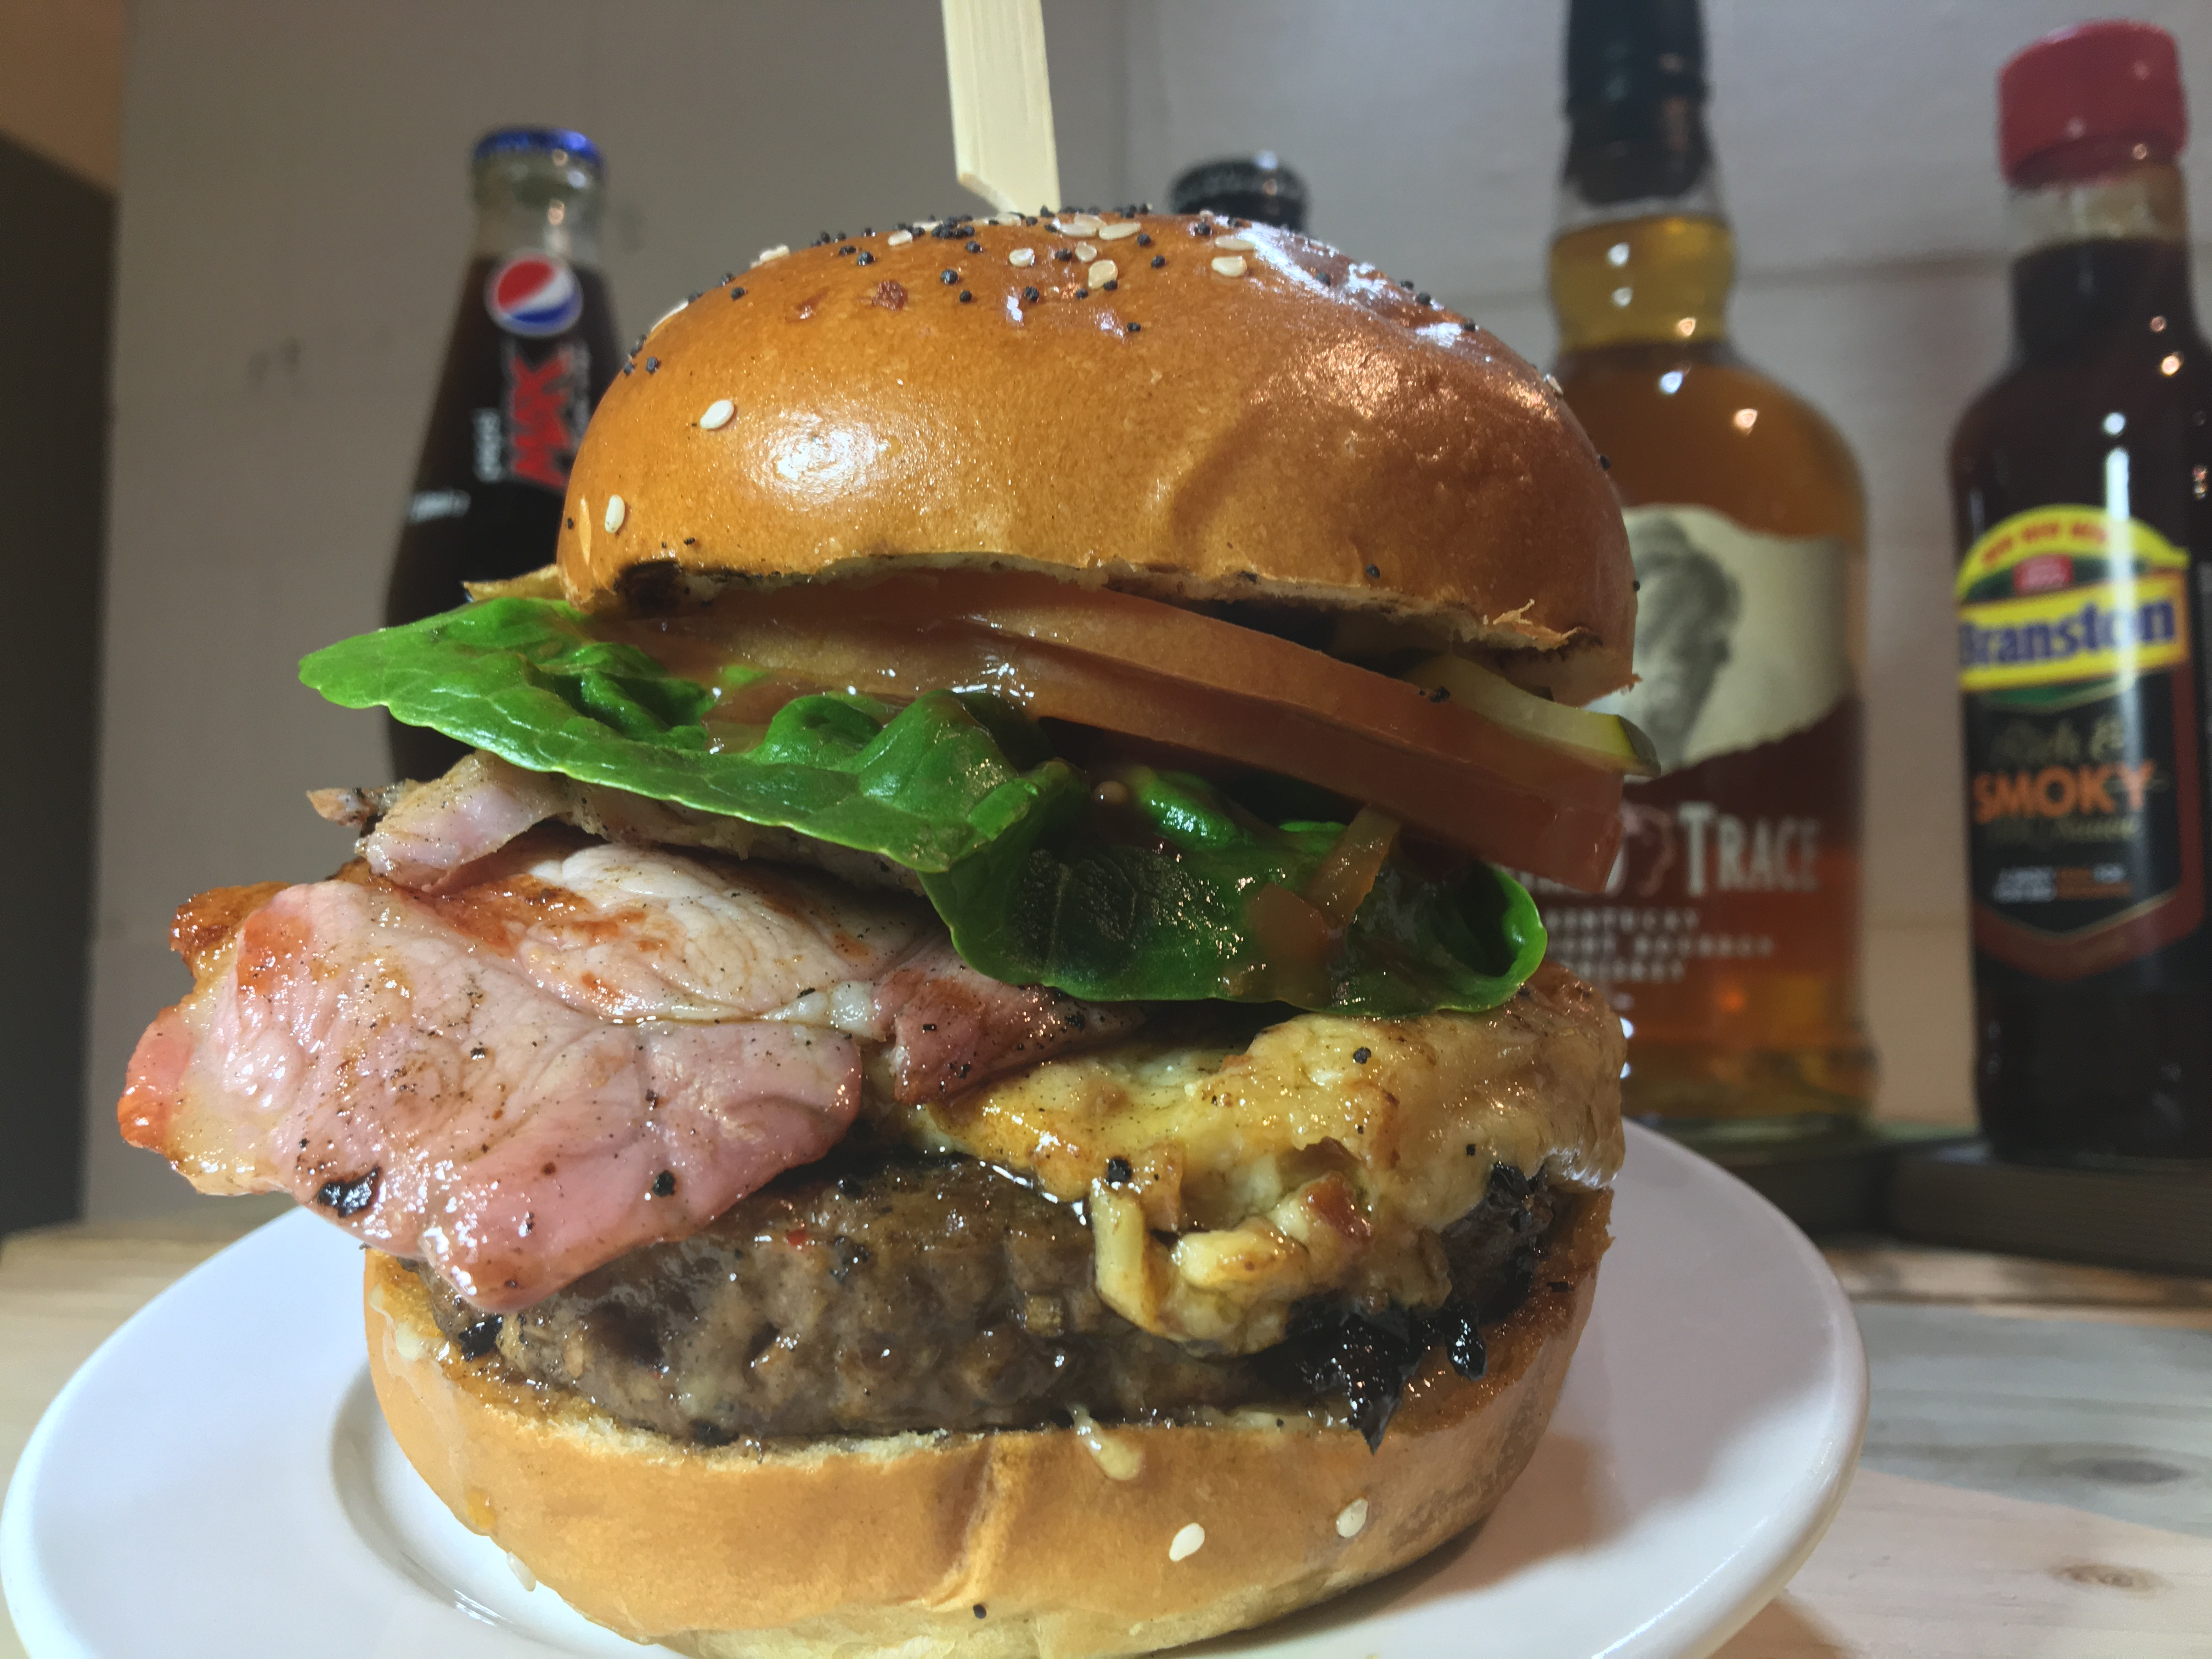 National Burger Awards 2017 - Pictures of all the burgers & winners!